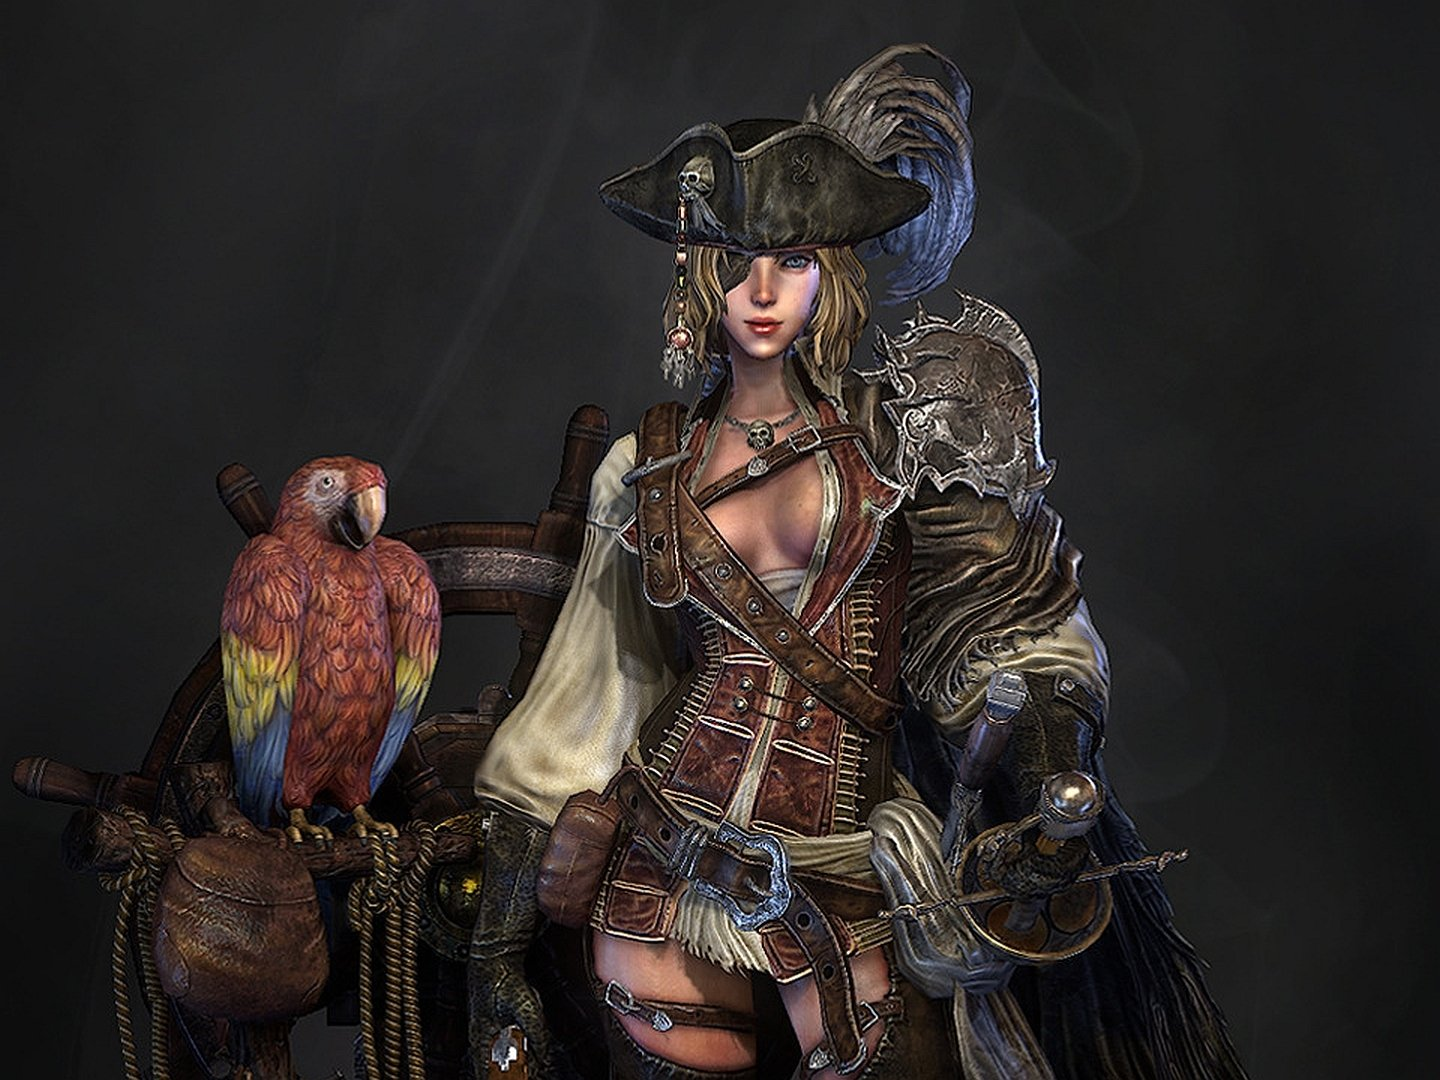 Pirate wallpaper and background image 1440x1080 id 359494 wallpaper abyss - Pirate background ...